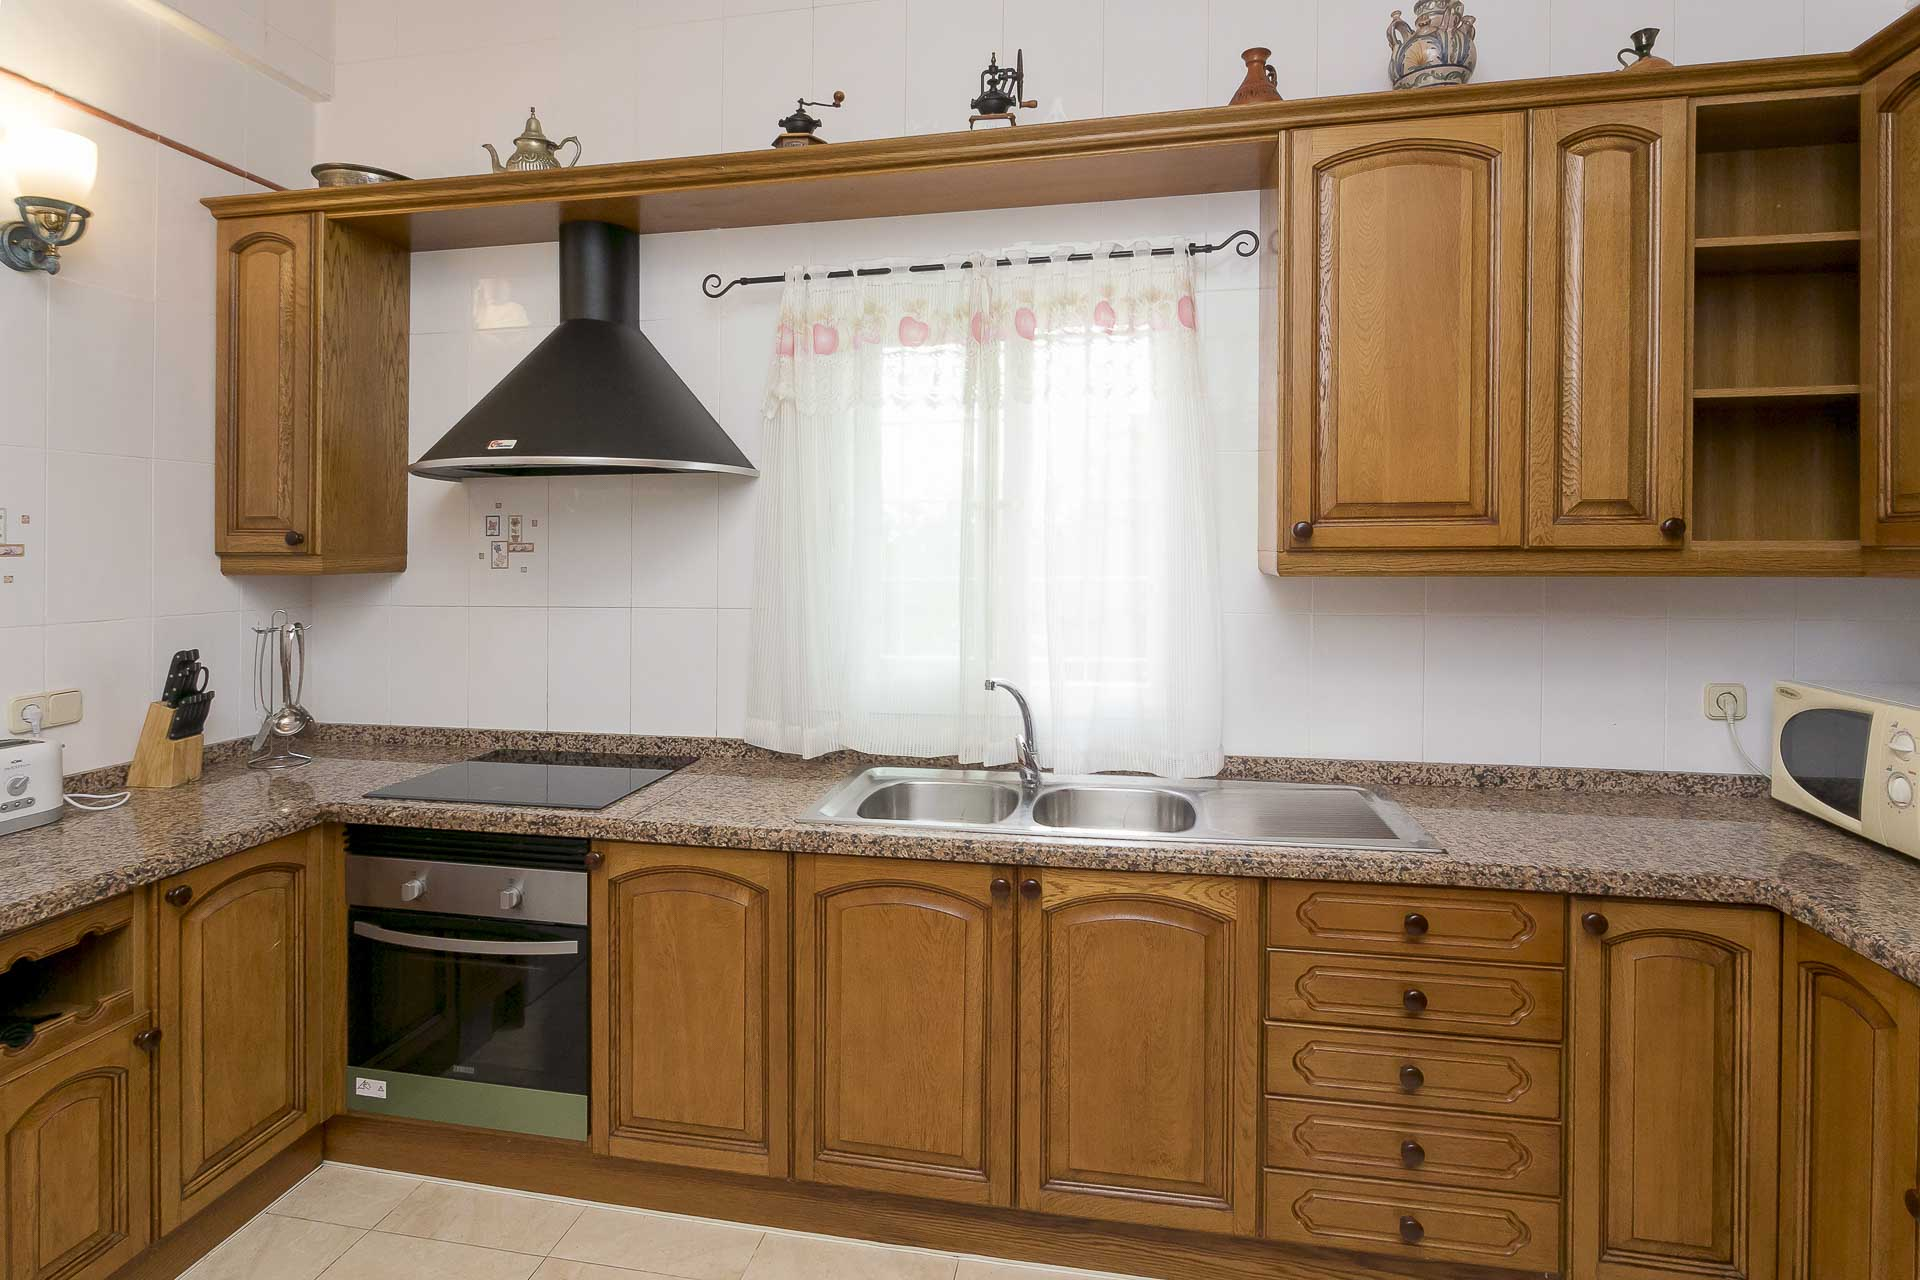 Kitchen house for rent in ibiza